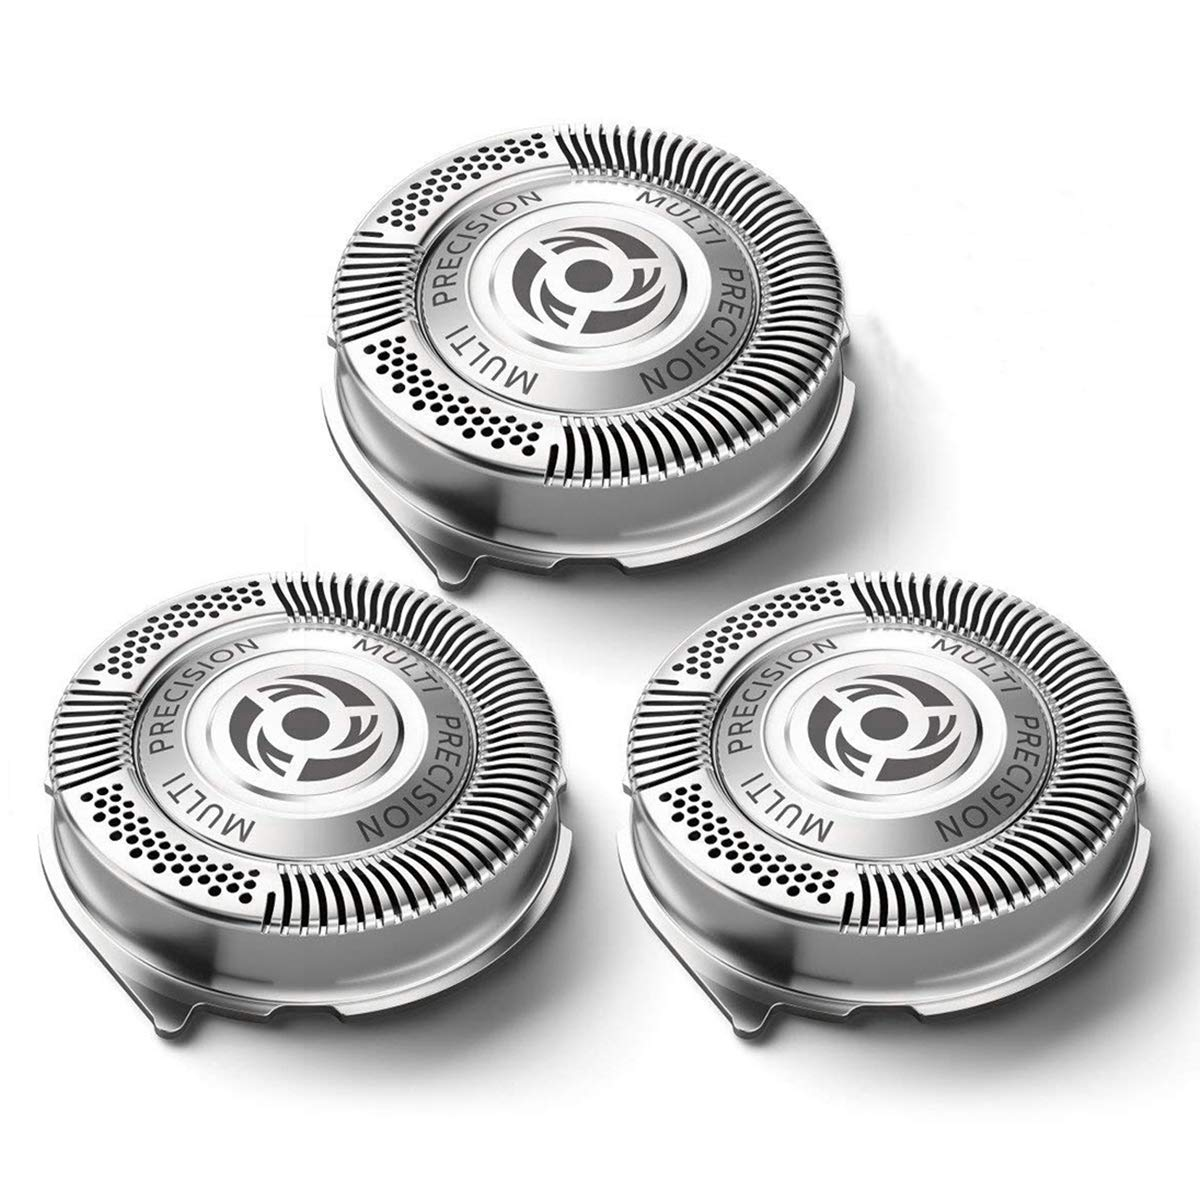 SH50 Replacement Heads for Philips Norelco Shavers Series 5000, Replace HQ8 Heads, SH50/52 MultiPrecision Blades MADE IN NETHERLANDS